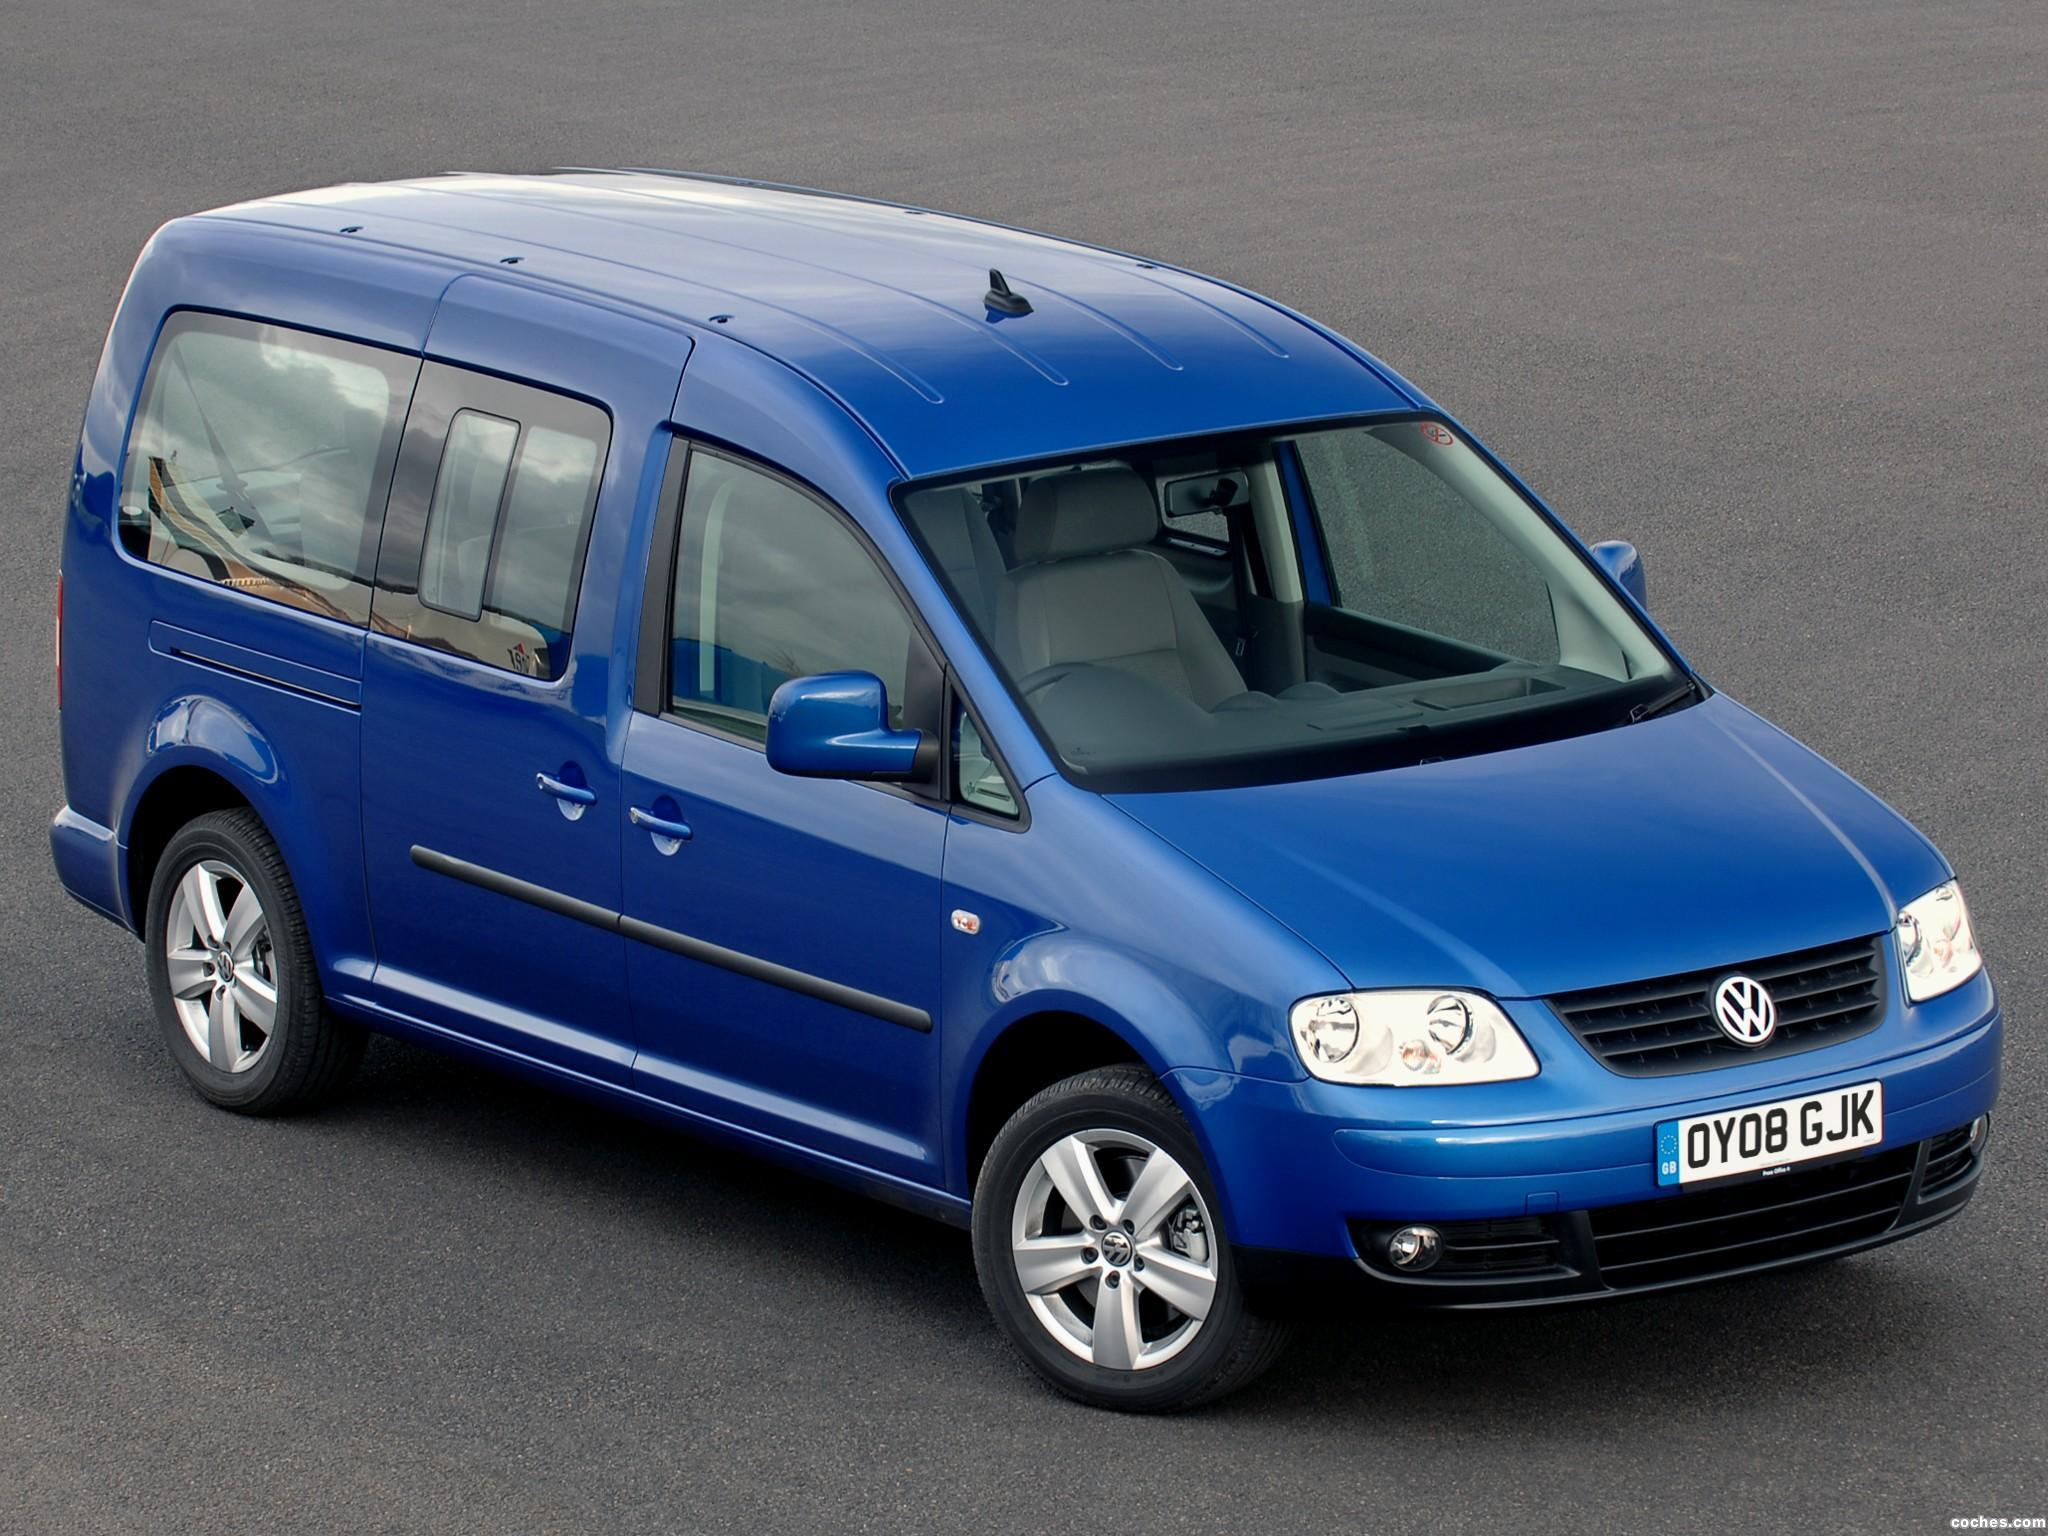 Foto 0 de Volkswagen Caddy Maxi Life UK 2007